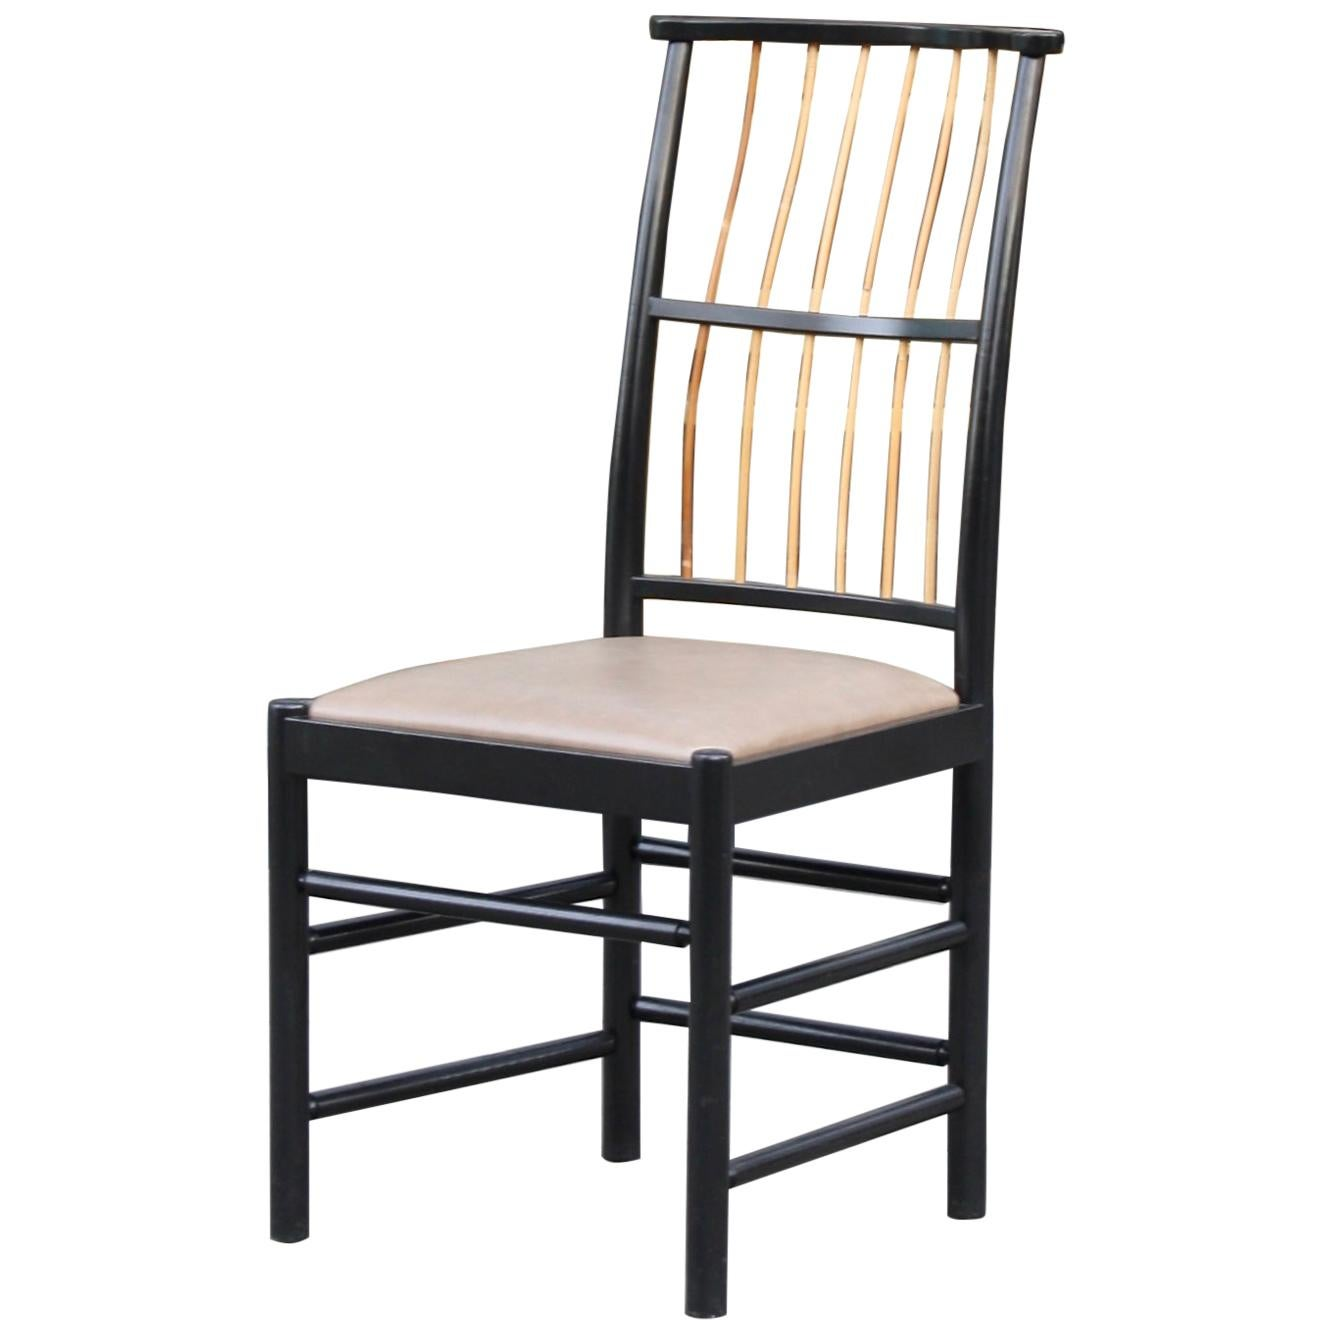 Josef Frank Black Lacquered Birch 2025 Spindle Back Chair Designed in 1925